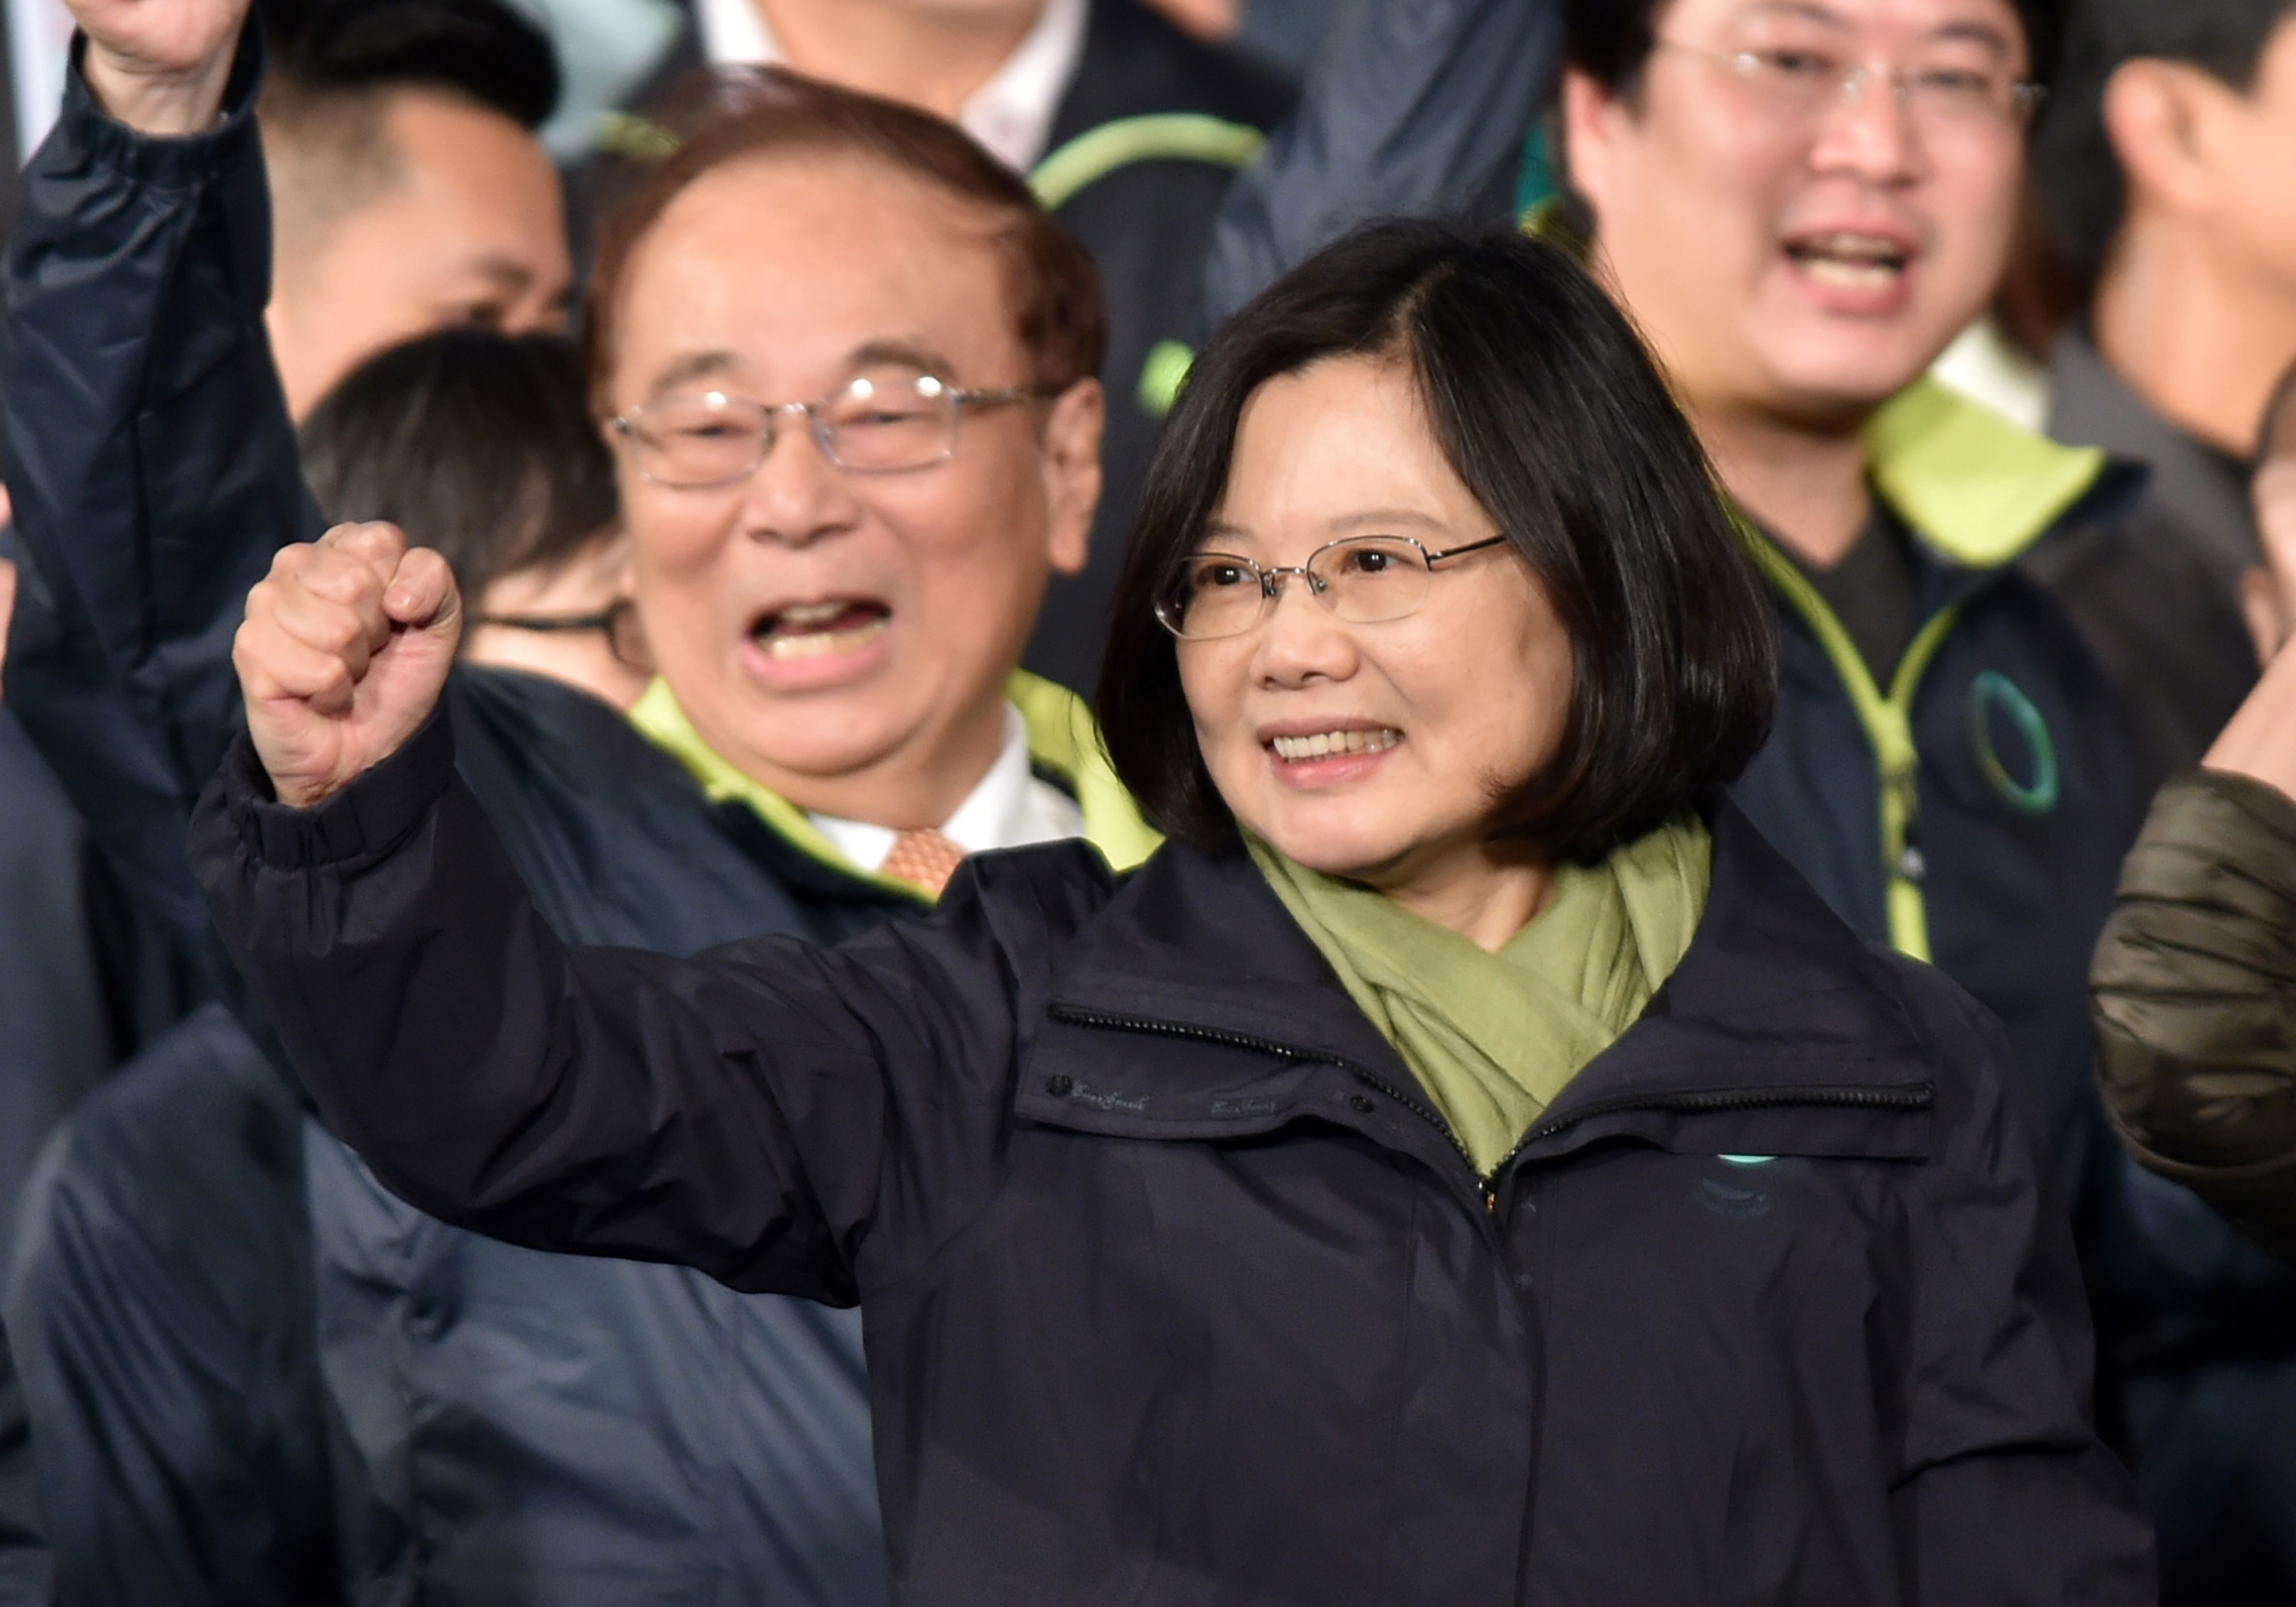 Democratic Progressive Party (DPP) presidential candidate Tsai Ing-wen gestures as she celebrates her victory inTaipei on January 15, 2016. Voters in Taiwan elected a Beijing-sceptic president in a dramatic democratic journey, carving their own political path against China's wishes. AFP PHOTO / Sam Yeh